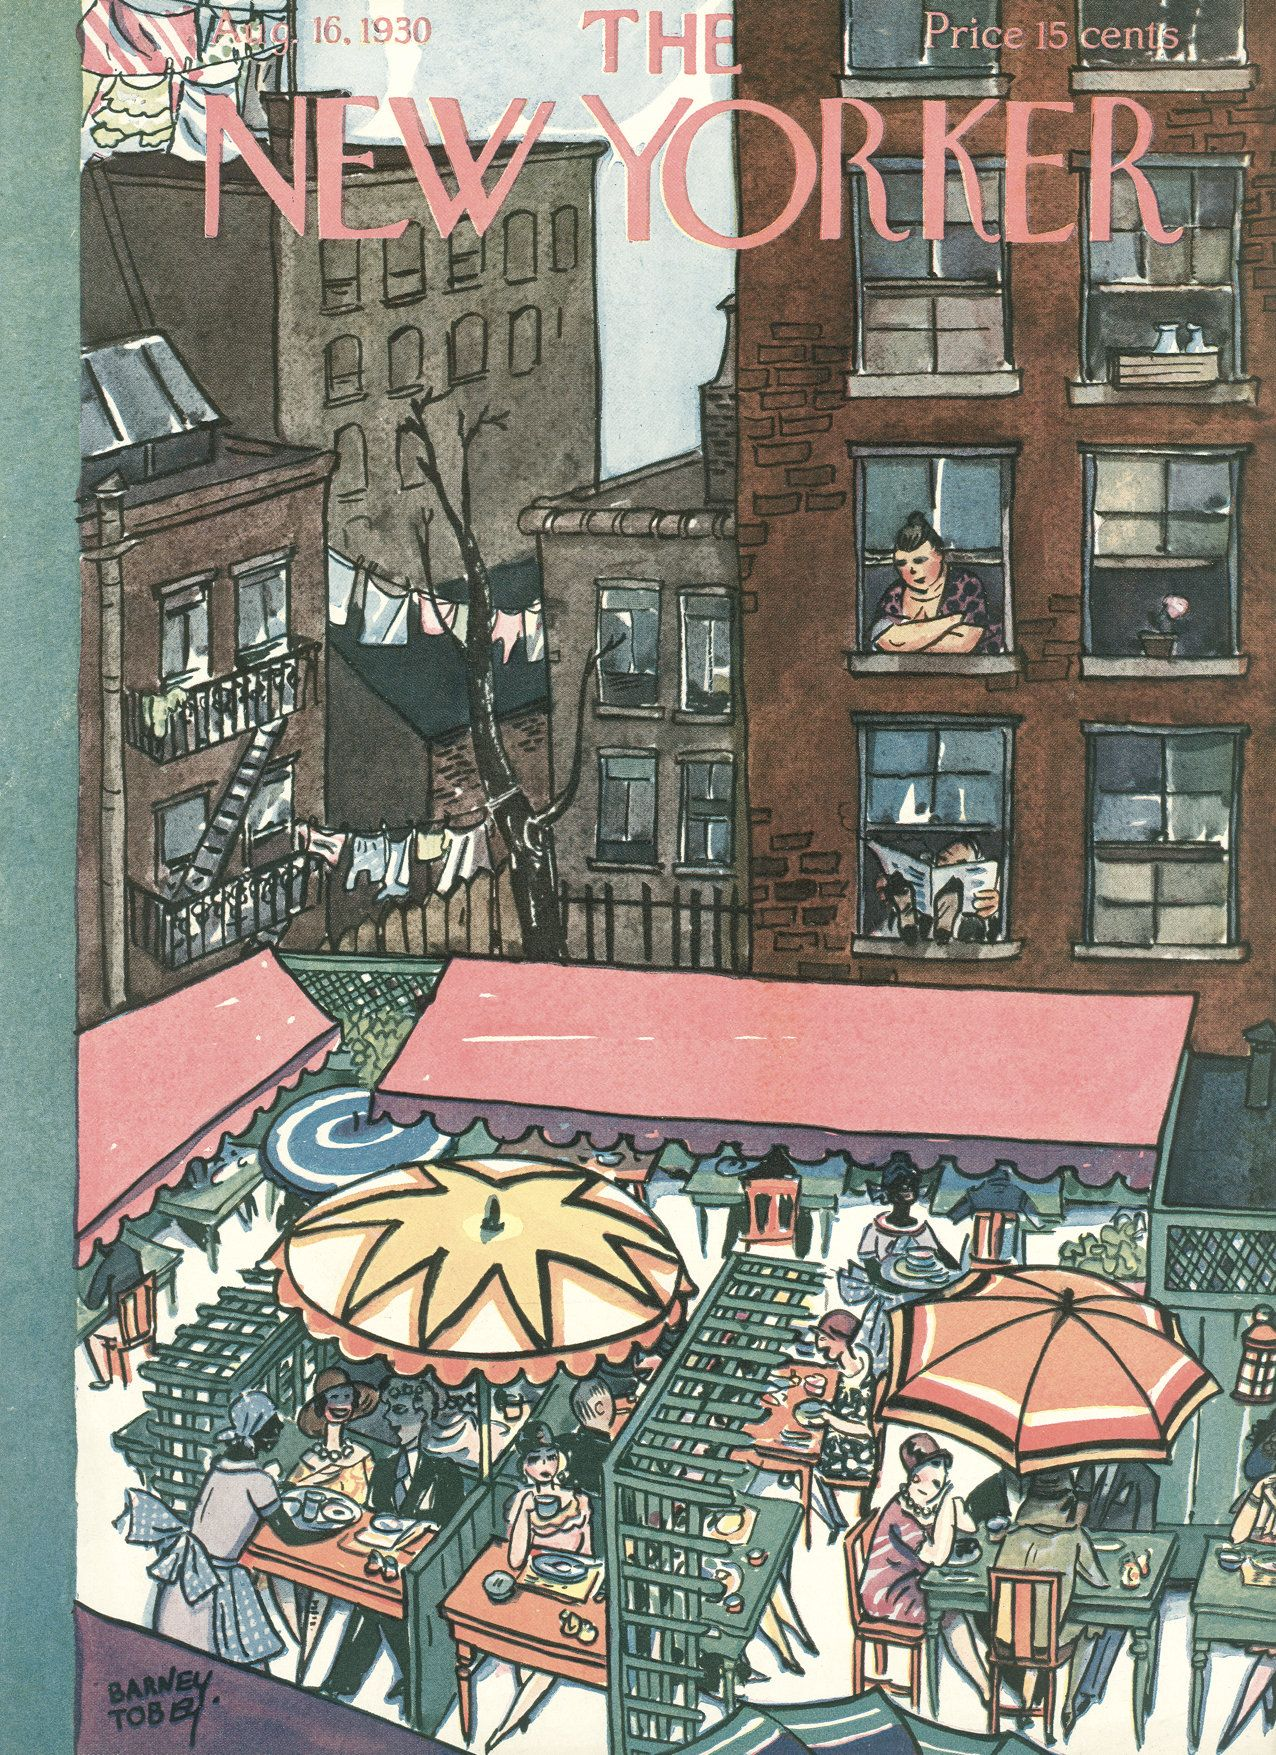 The New Yorker - Saturday, August 16, 1930 - Issue # 287 - Vol. 6 - N° 26 - Cover by : Barney Tobey